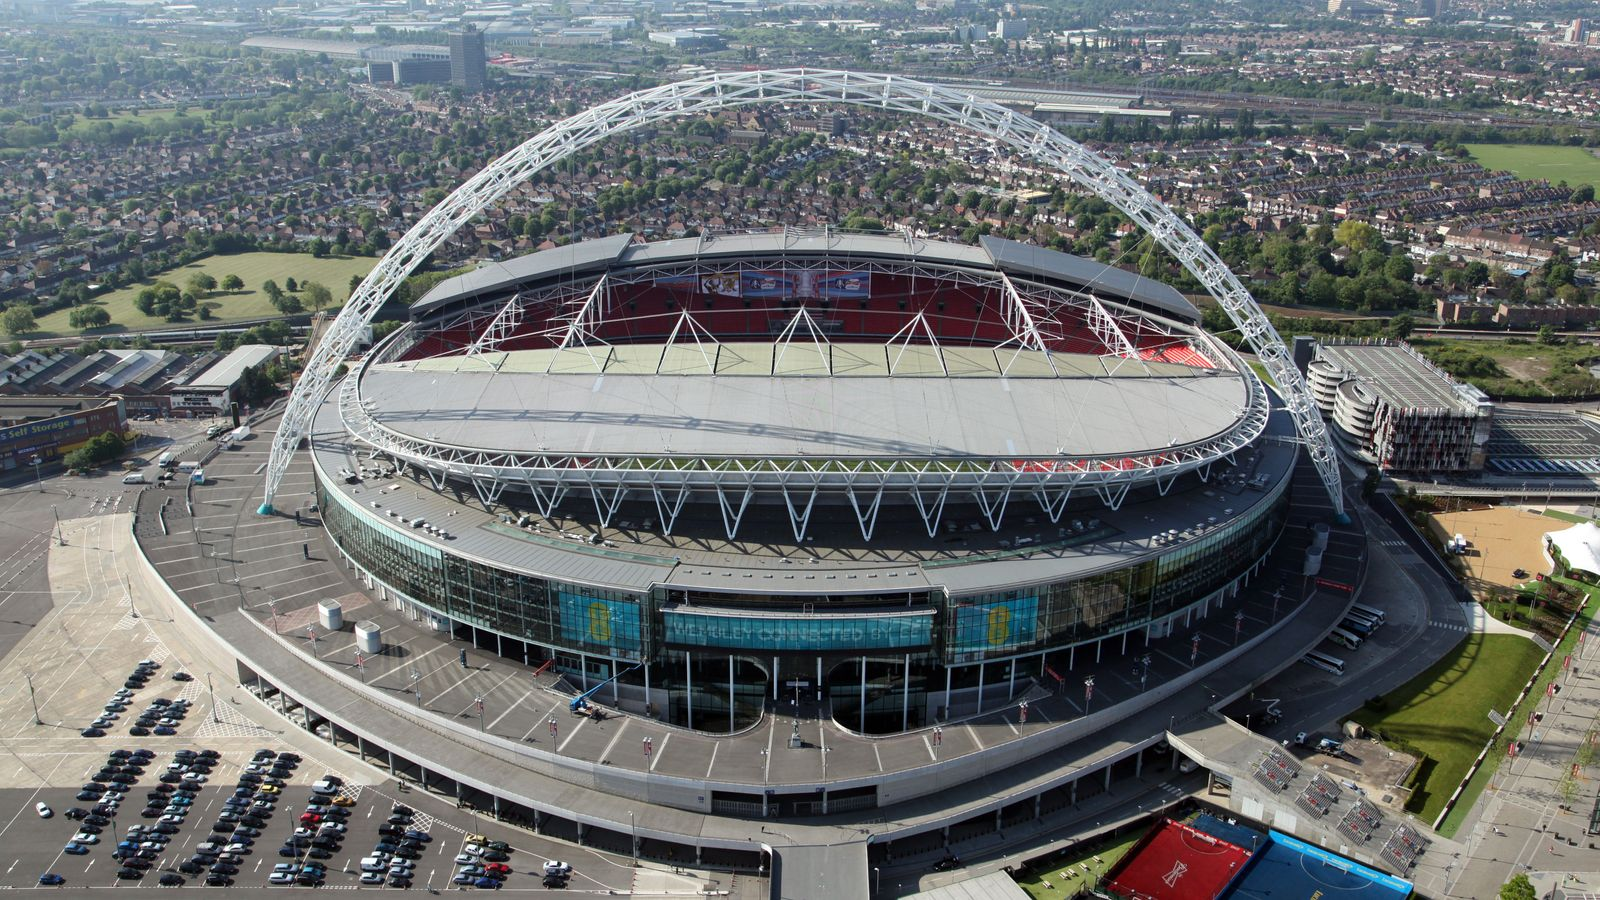 COVID-19: Vaccine passports or proof of negative test to be used at Wembley for Euro 2020 matches | UK News | Sky News